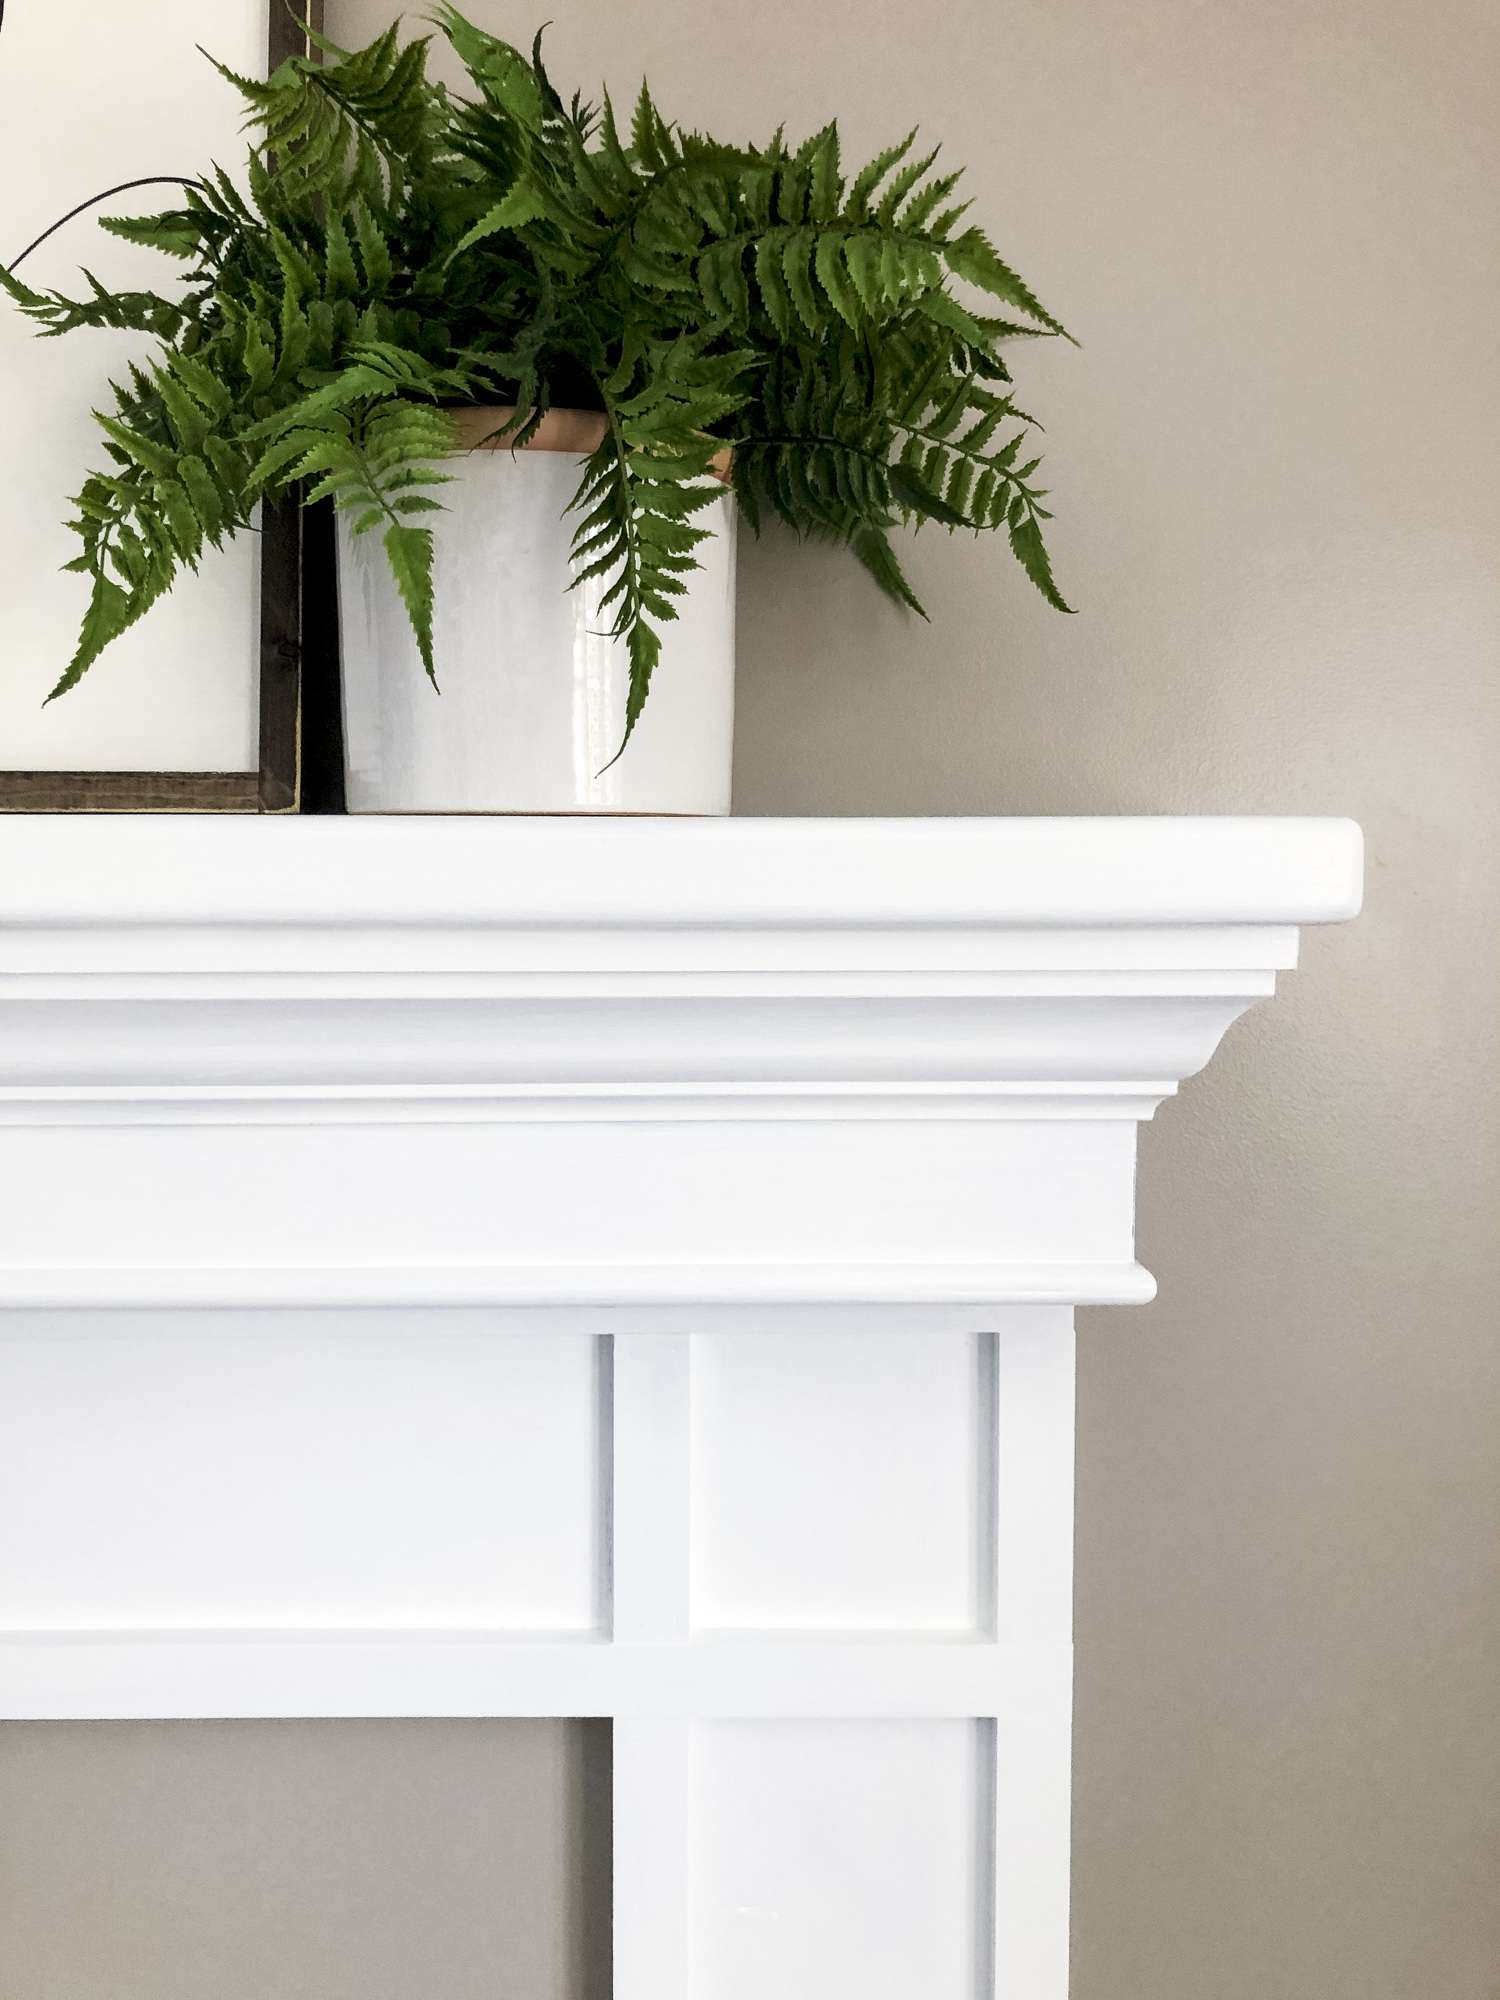 Fireplace mantel shelf.